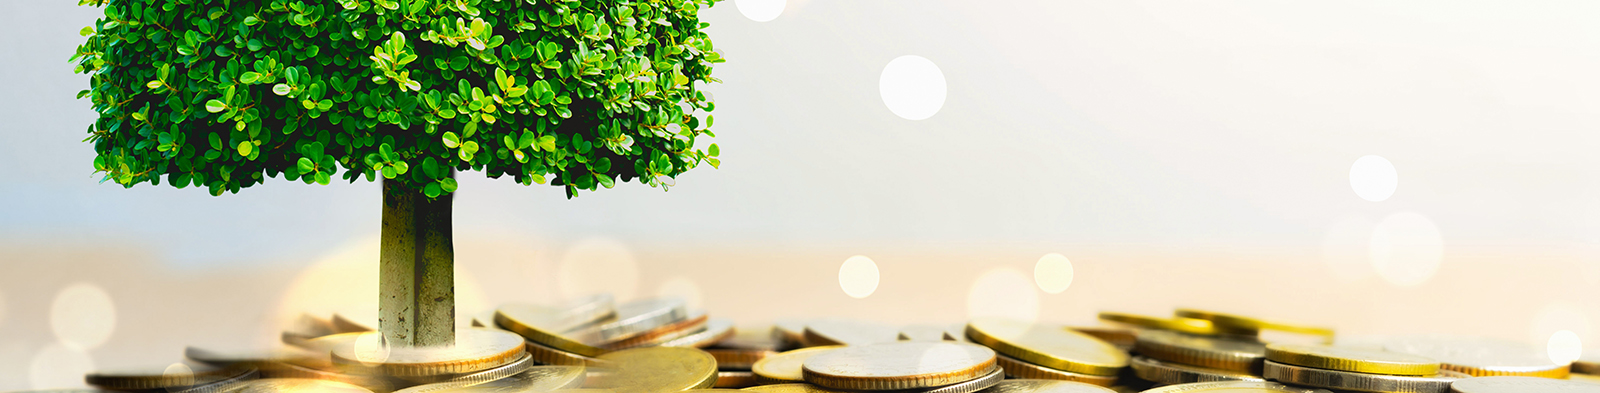 tree growing surrounded by coins